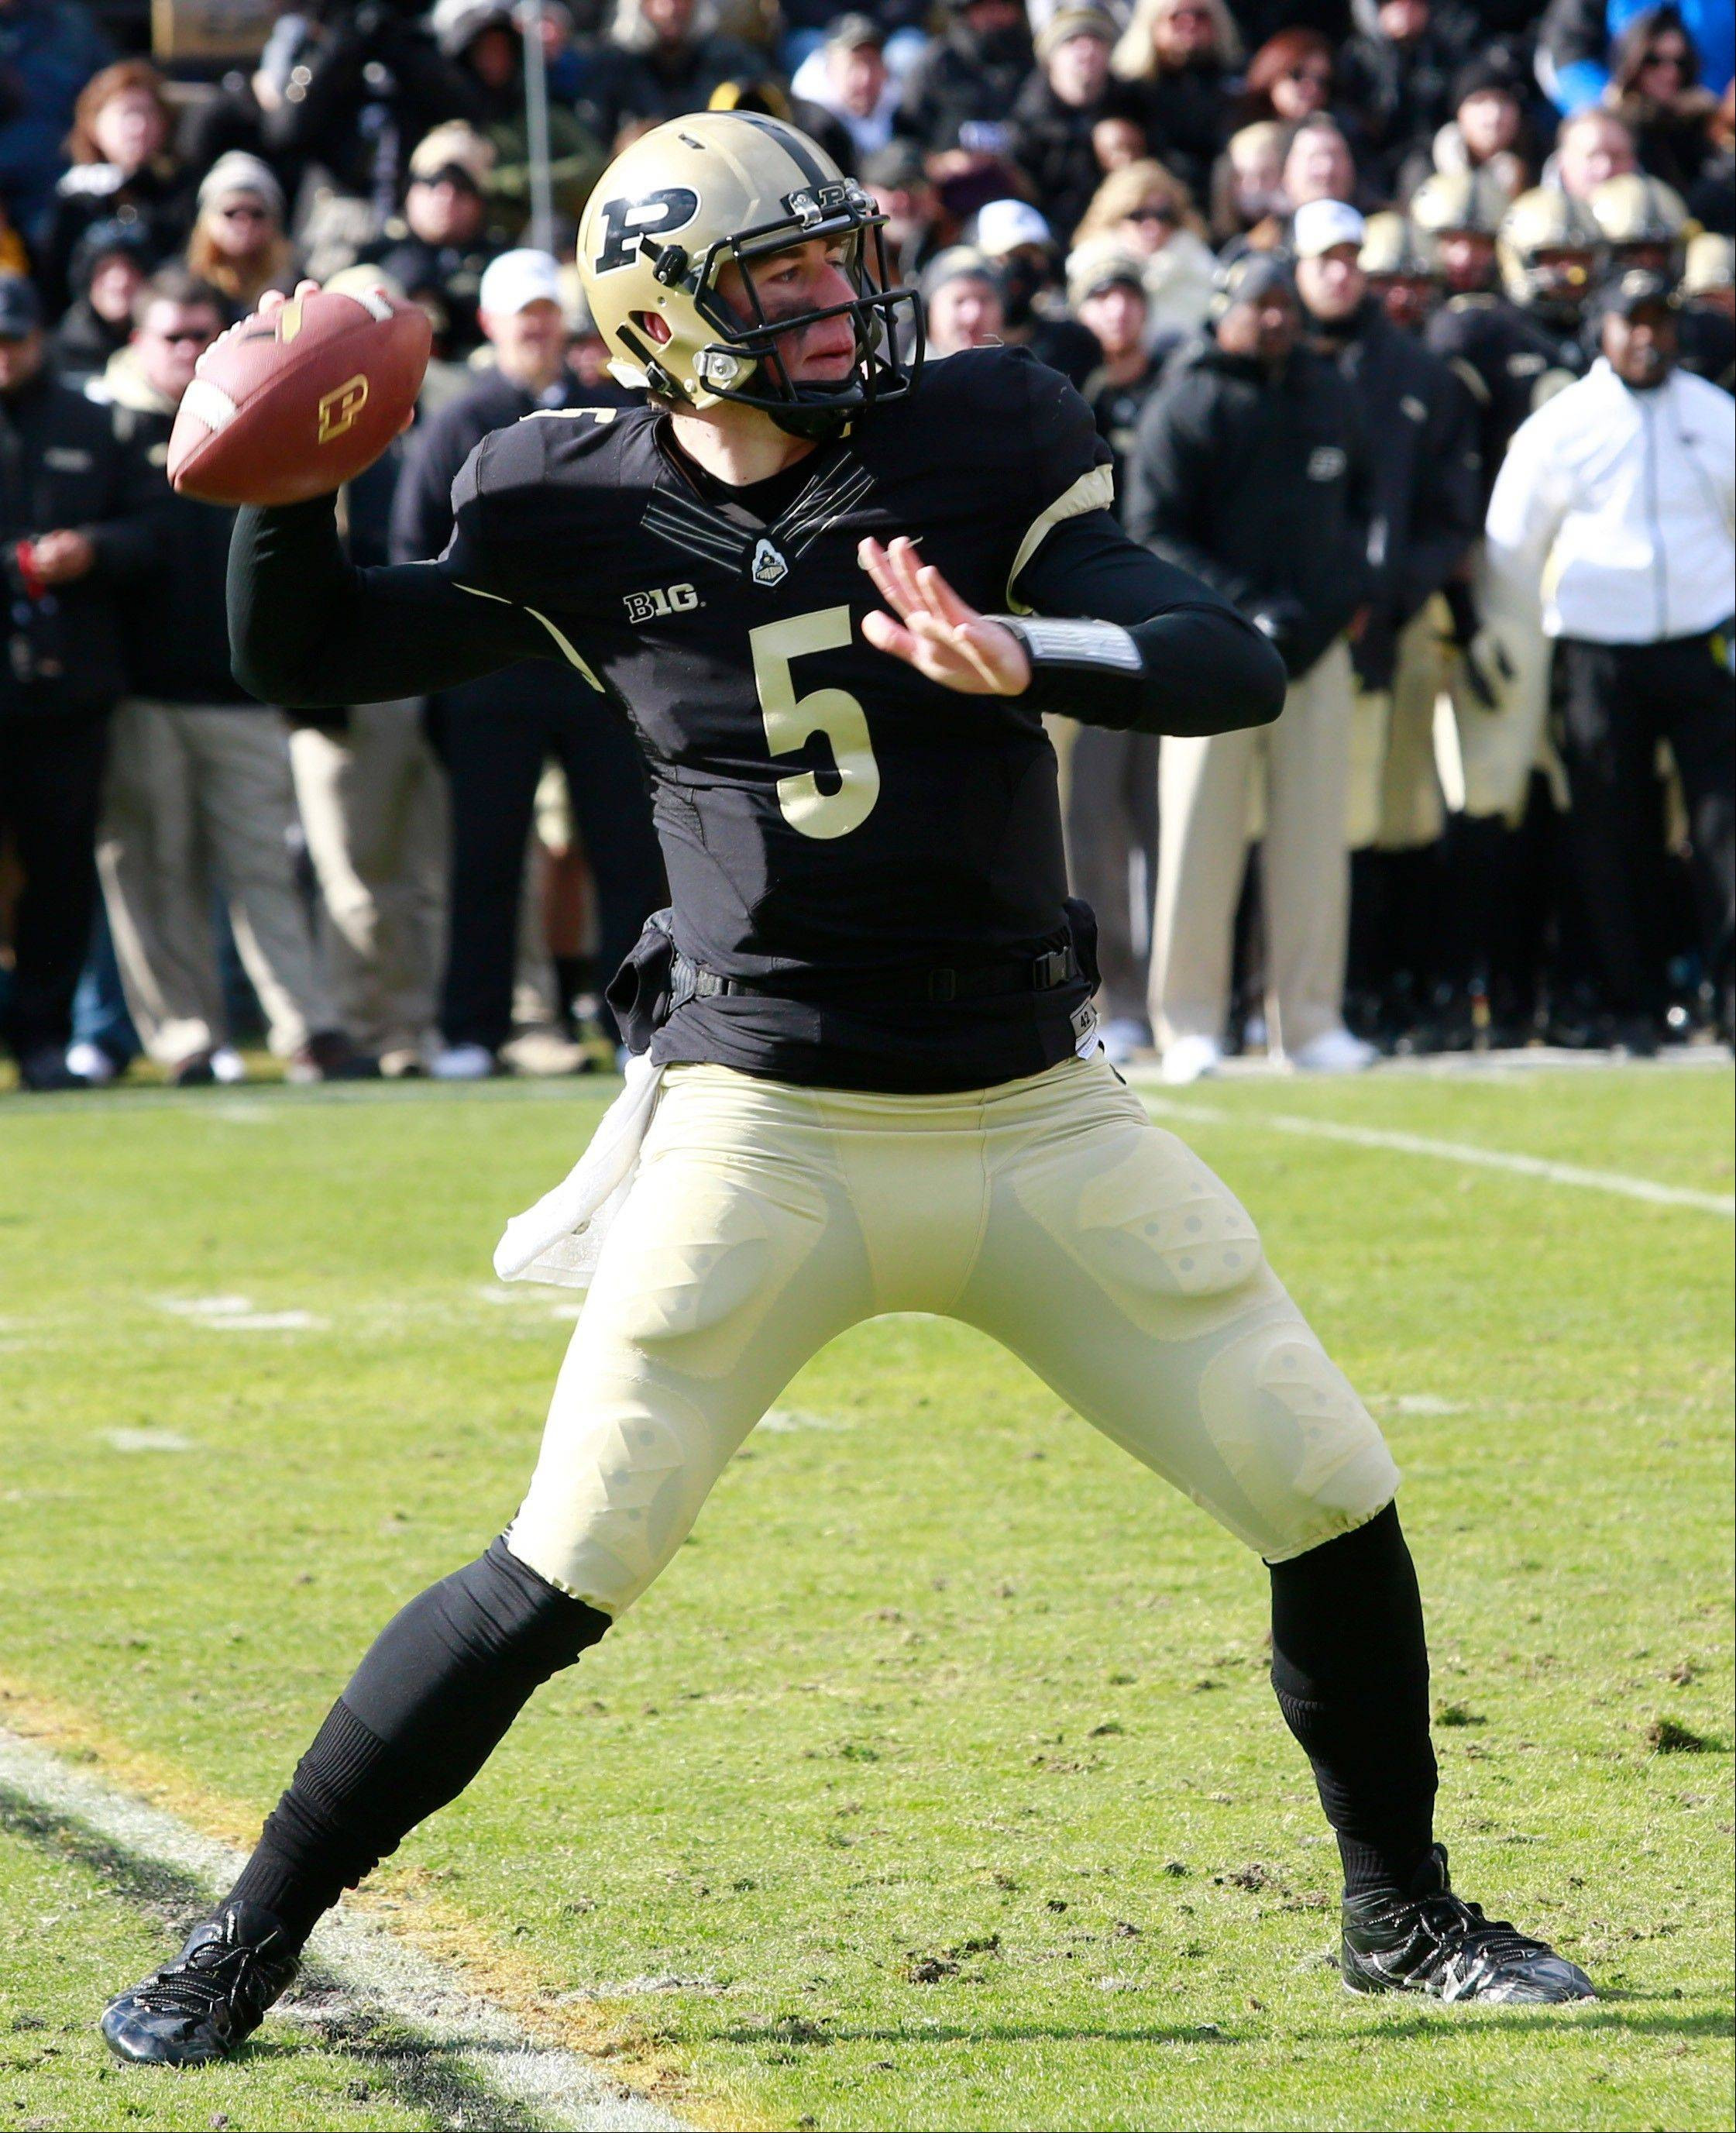 Purdue quarterback Danny Etling throws a pass in the first half of last Saturday�s home loss to Illinois. The Boilermakers haven�t had a winless Big Ten season since 1993 and are trying to avoid a 10th consecutive loss.